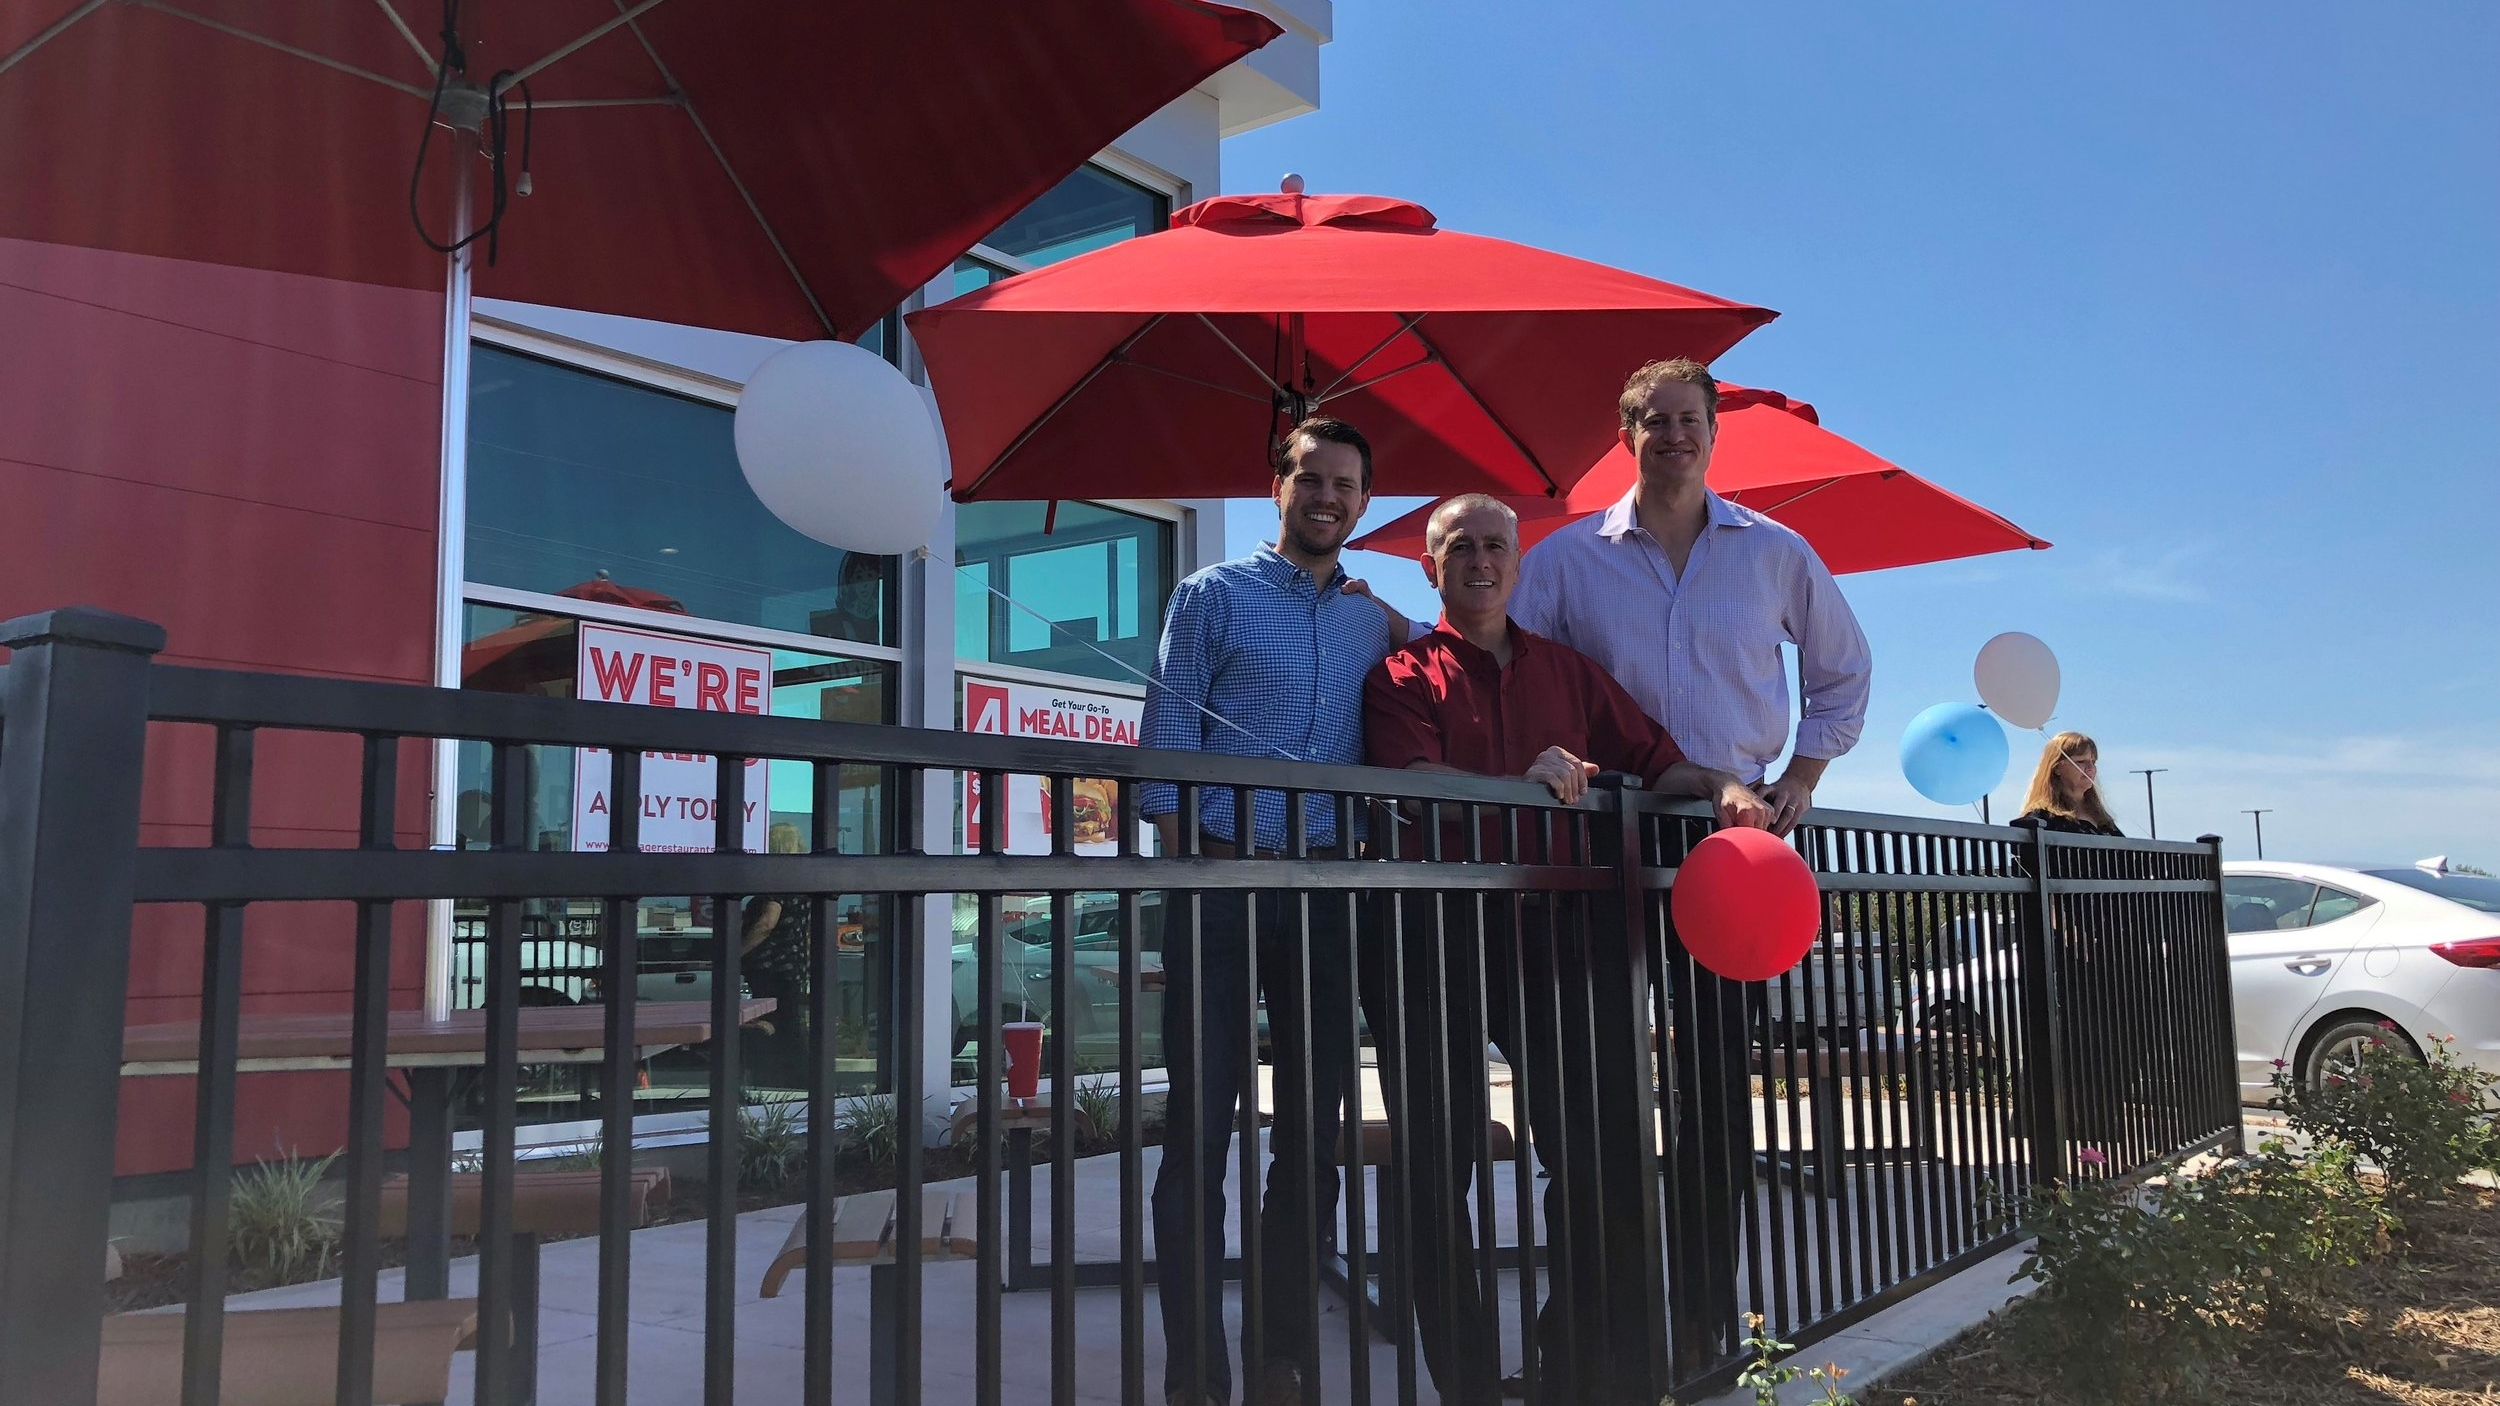 Nick Rhoads, Glen Brandenburg and Nate Hamilton partnered up to start a new Wendy's franchise. Wondering how to become a Wendy's franchisee? Click  here  to learn more, visit our  FAQ page , or contact us directly at wendys.franchising@wendys.com.